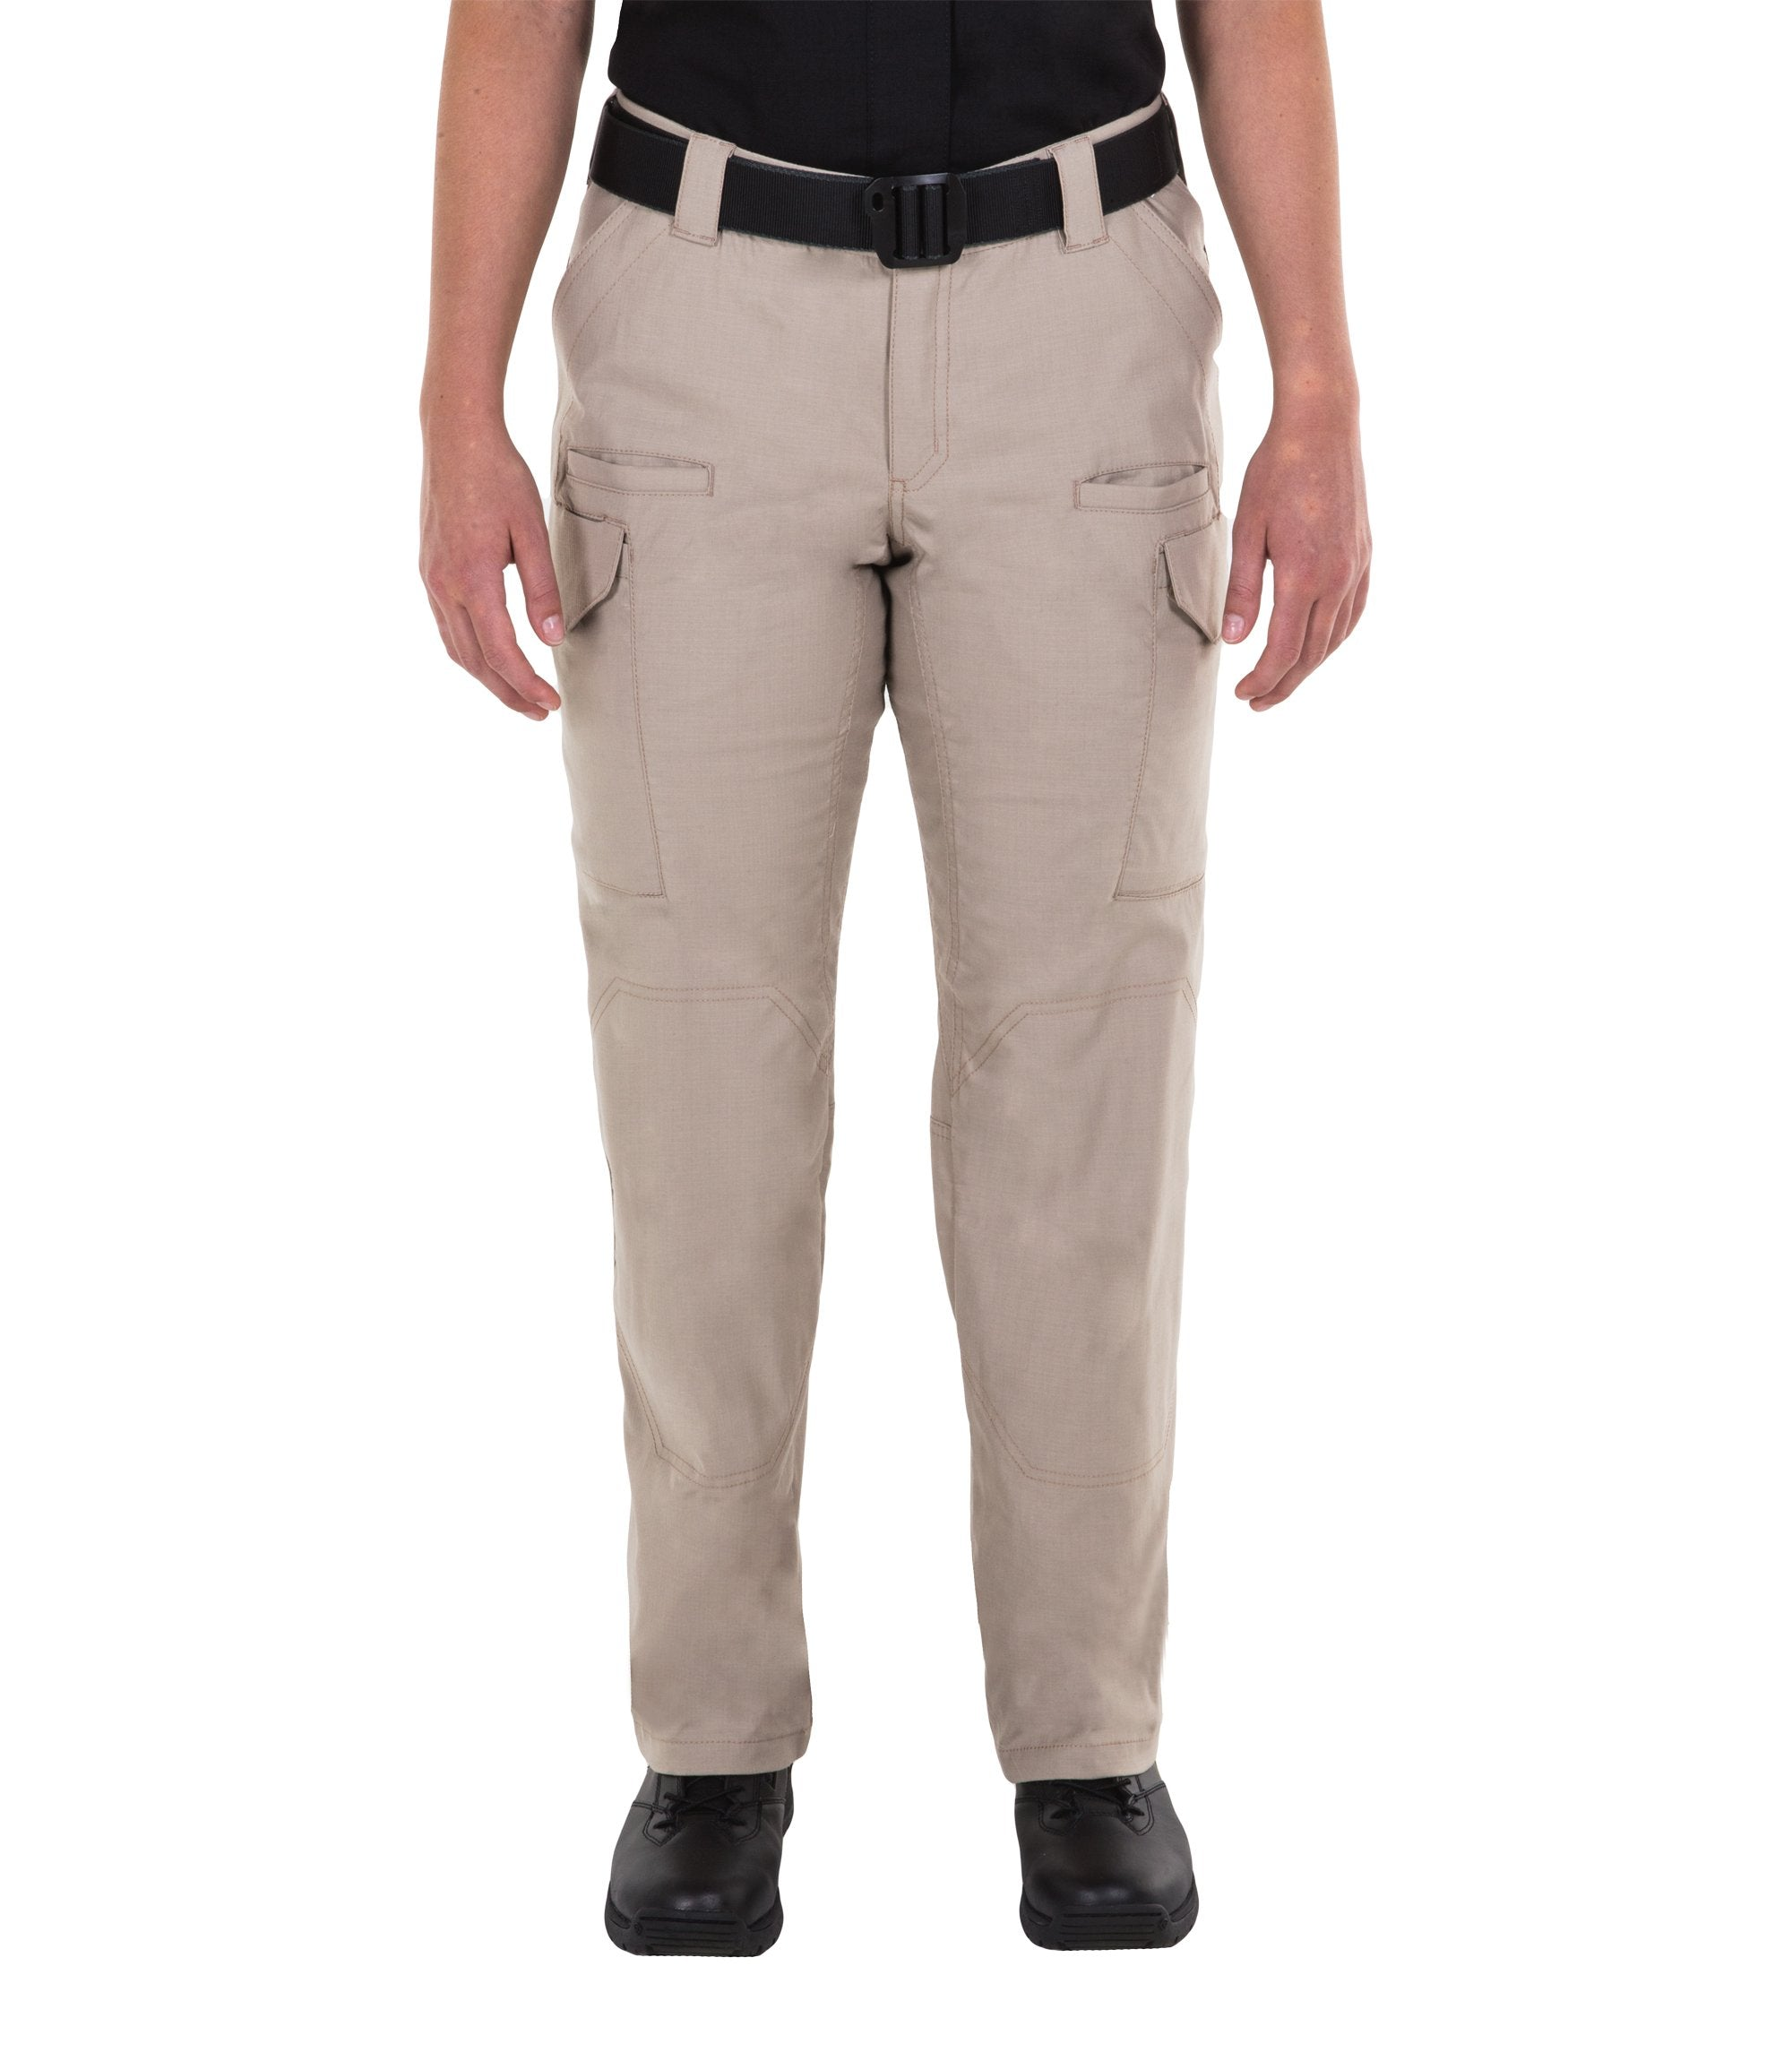 First Tactical Women's V2 Tactical Pants - Black & Khaki - red-diamond-uniform-police-supply